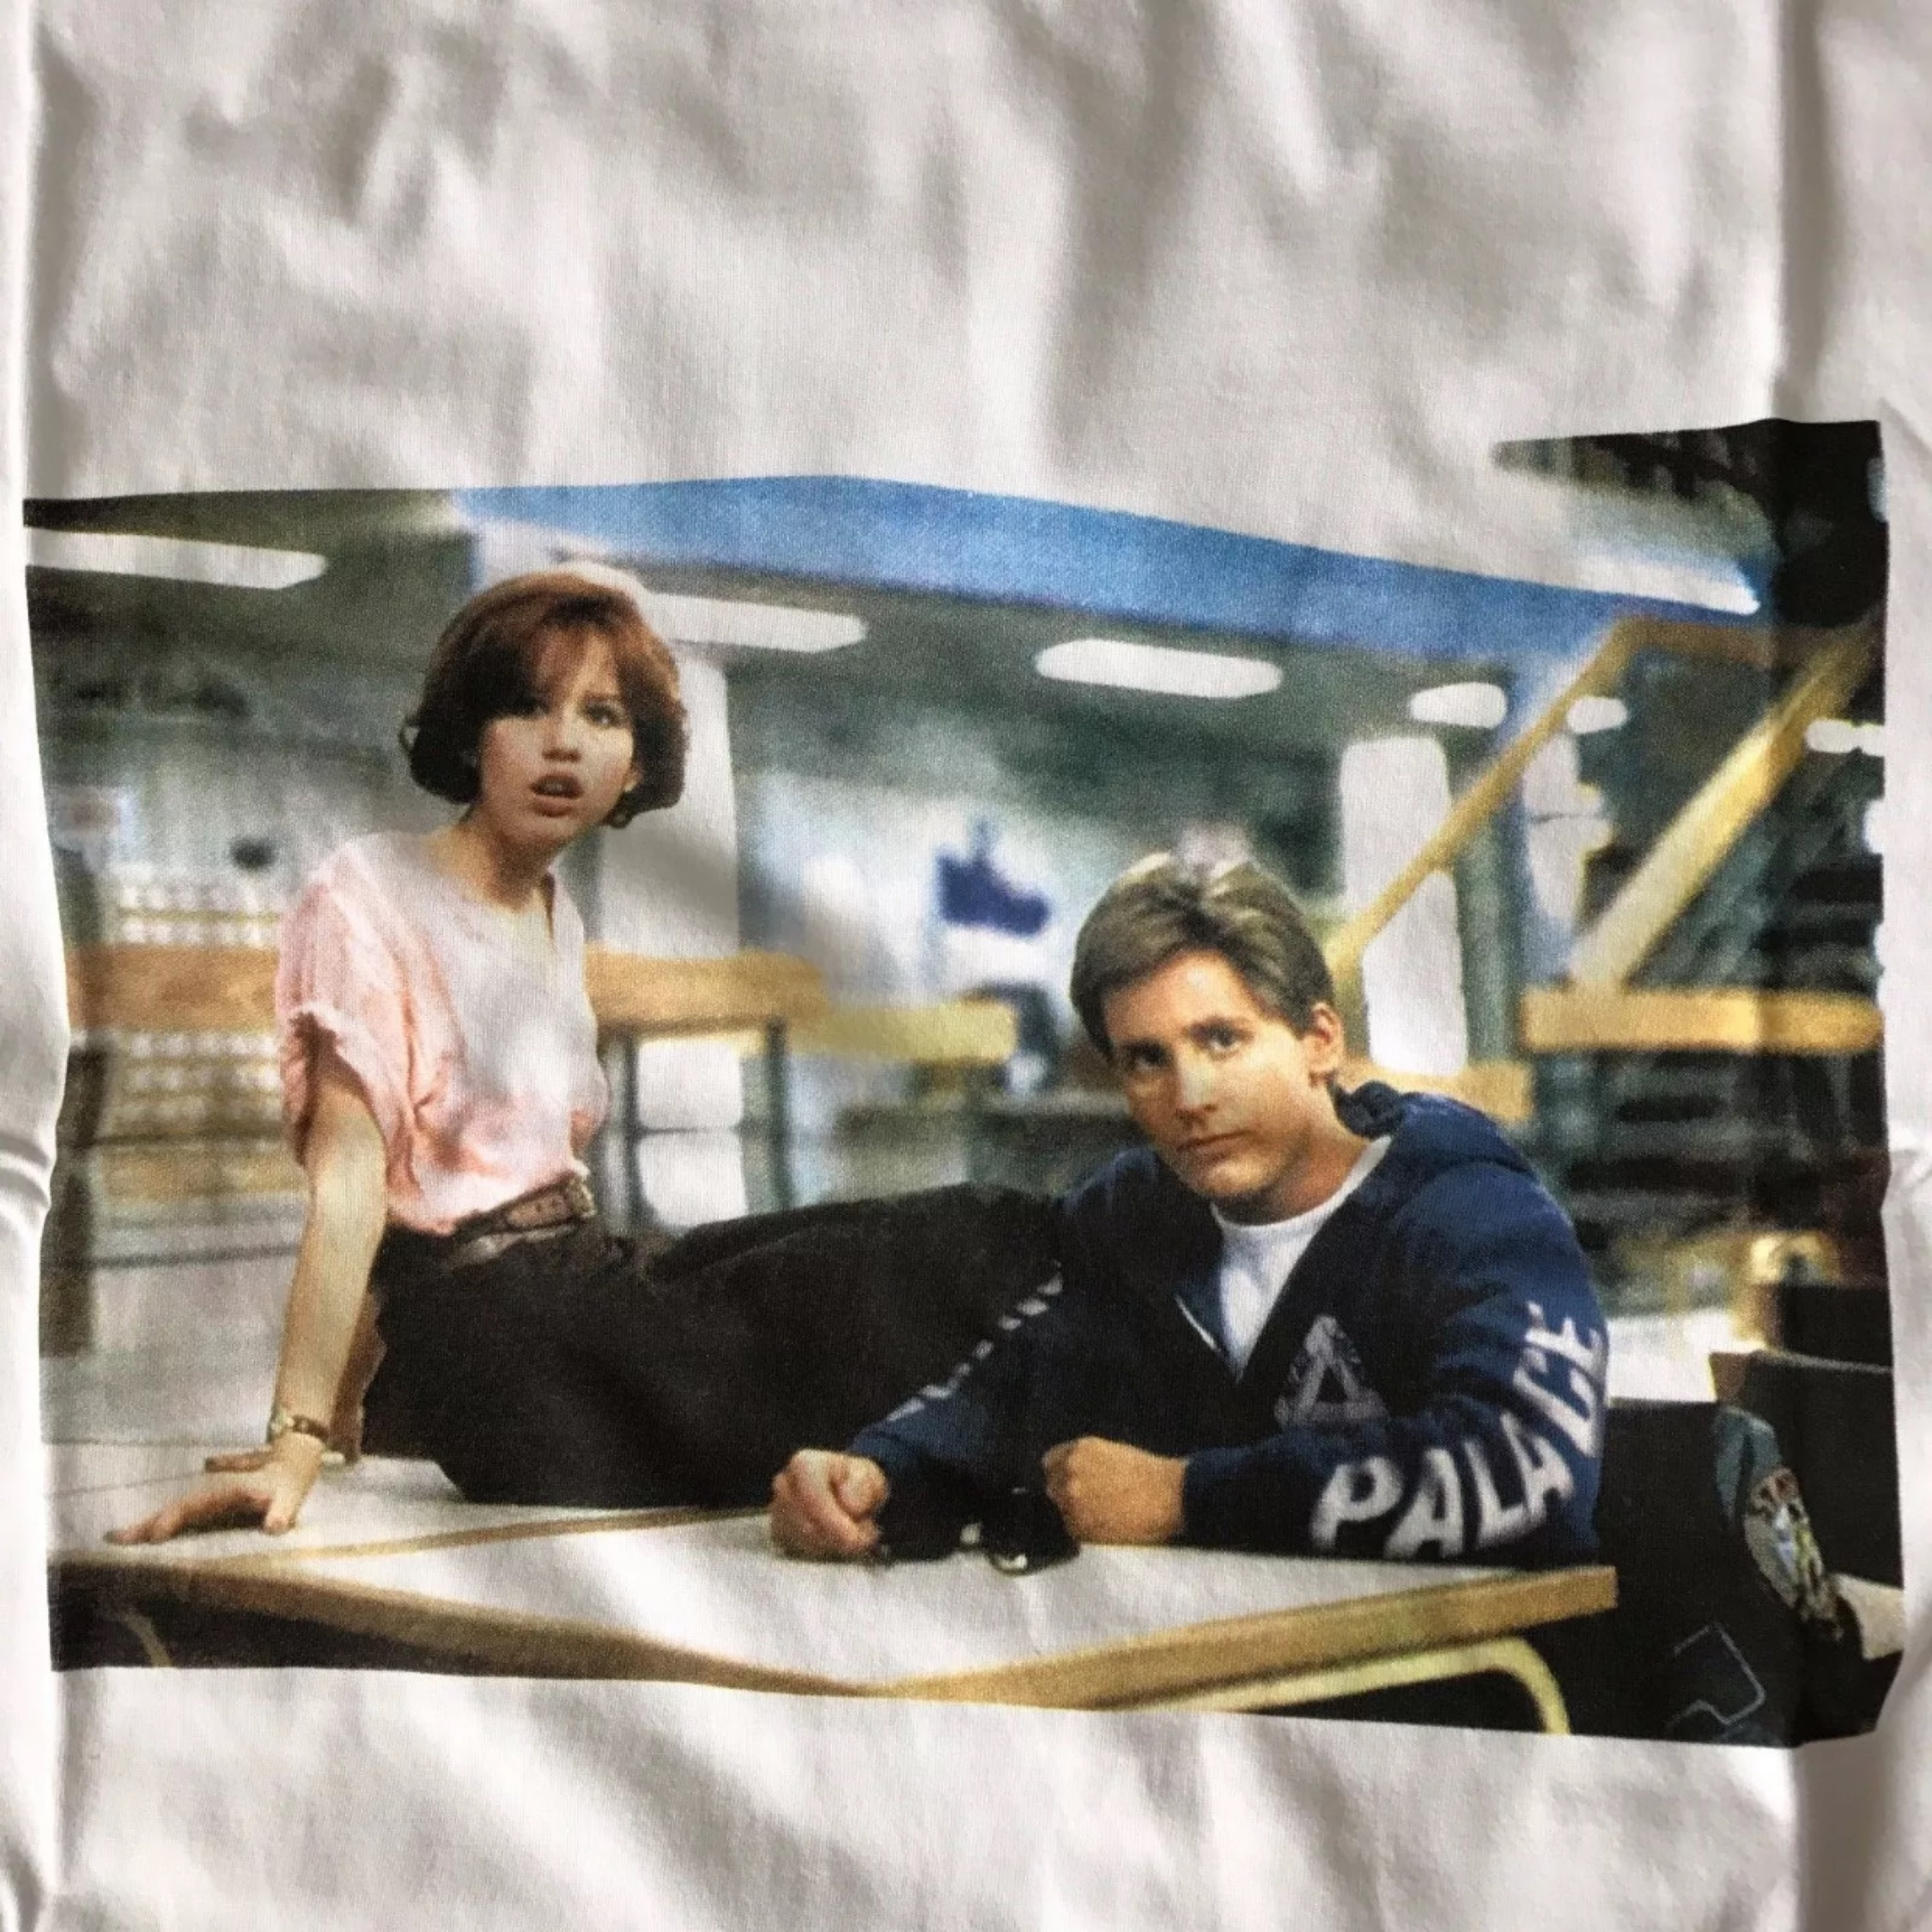 Palace Emelio Estevez White Tee